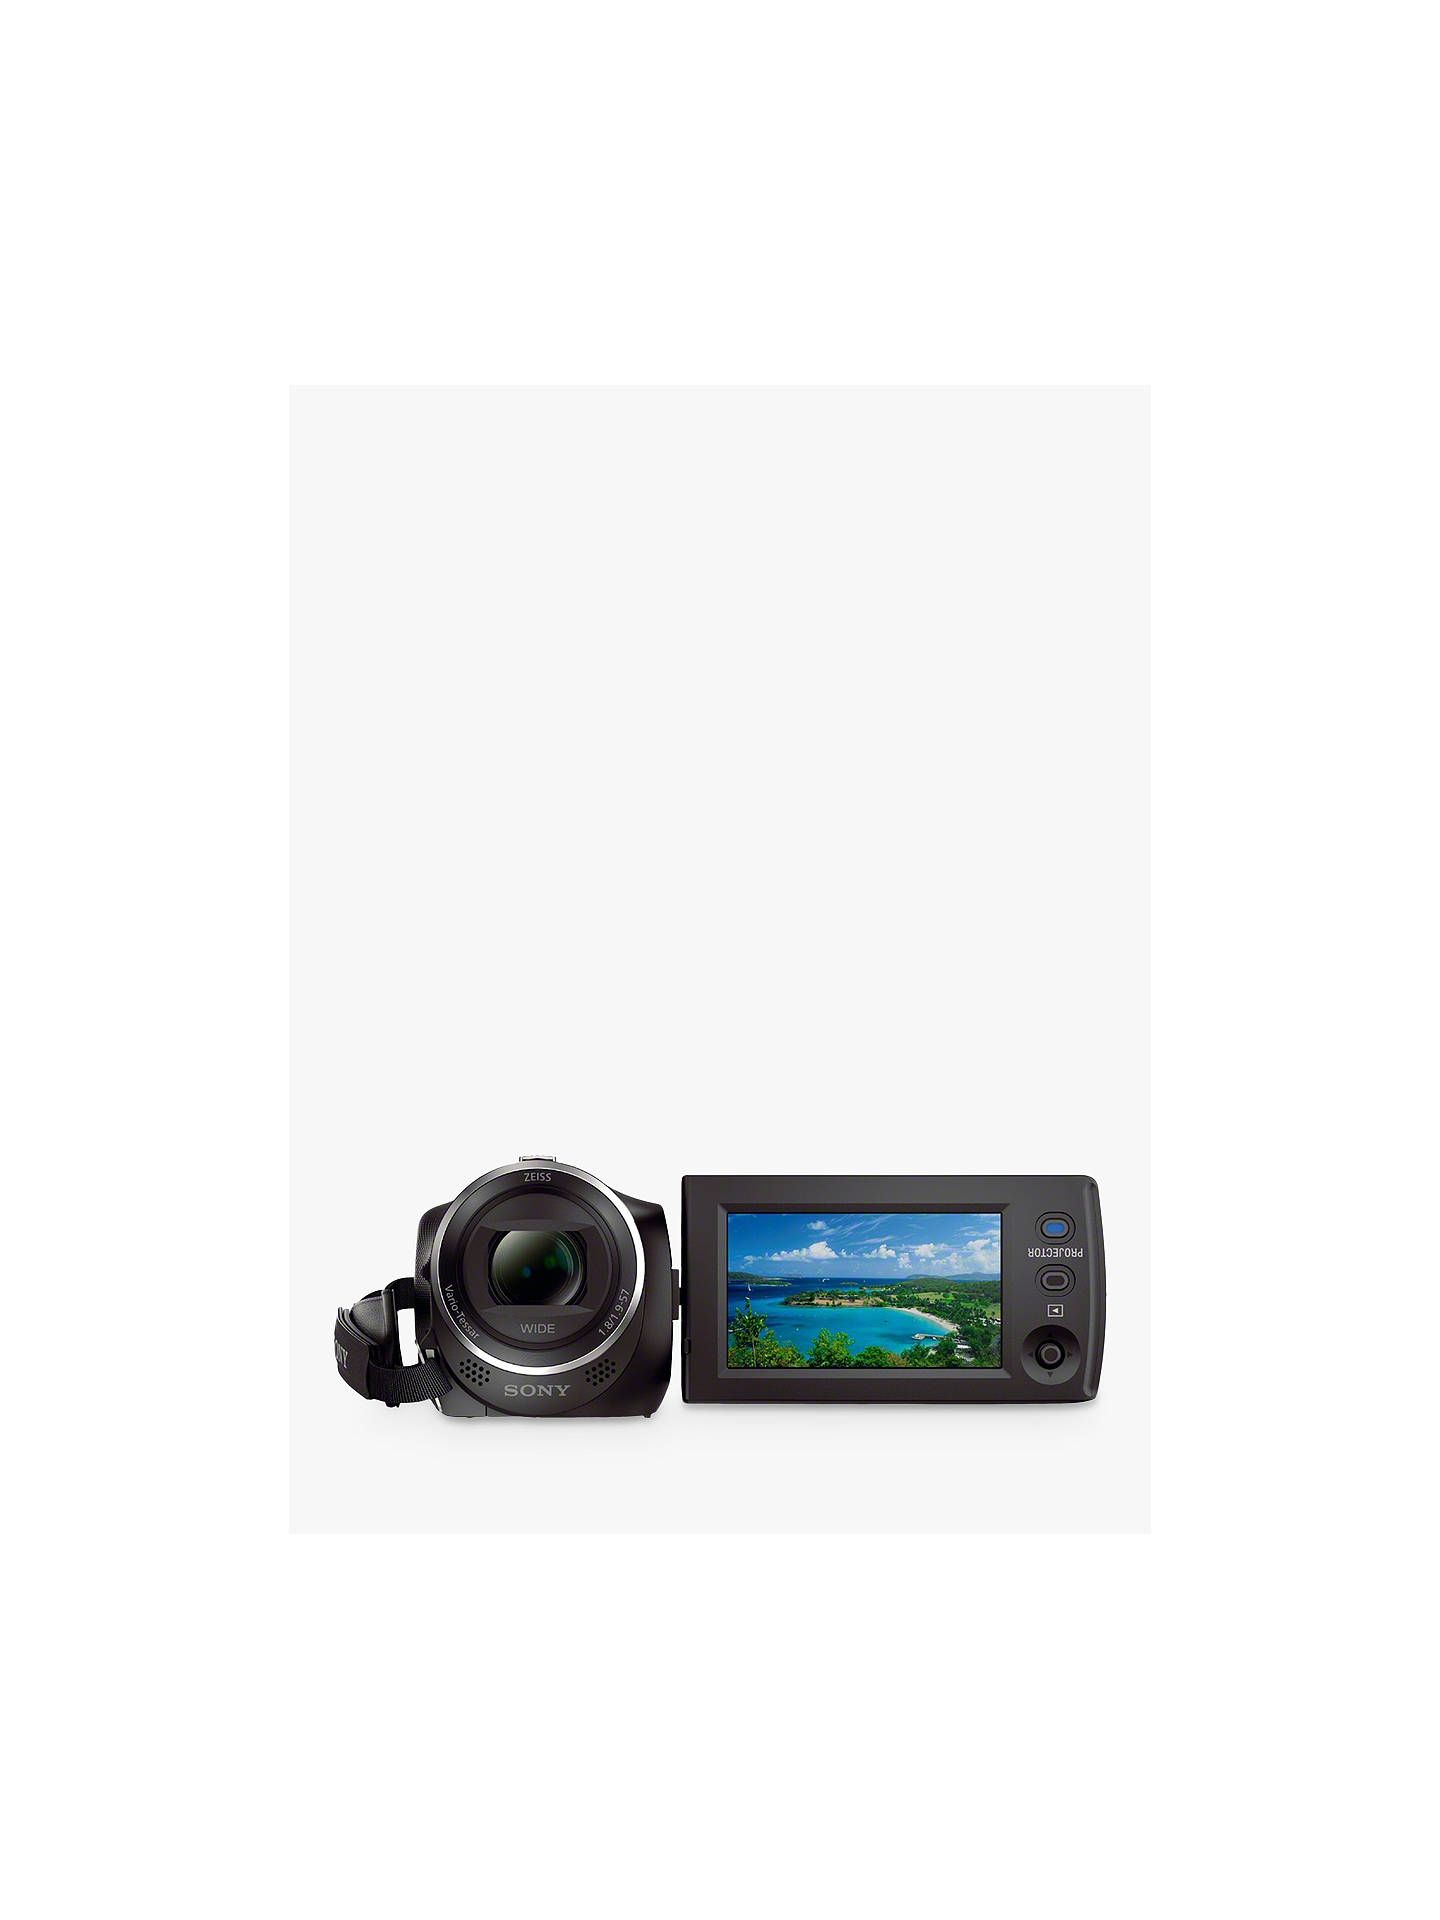 Sony Hdr Pj410 Full Hd Camcorder Review Ausreise Info Pj675 Handycam Built In Projector Pal Buysony With 1080p 229 Video Recording